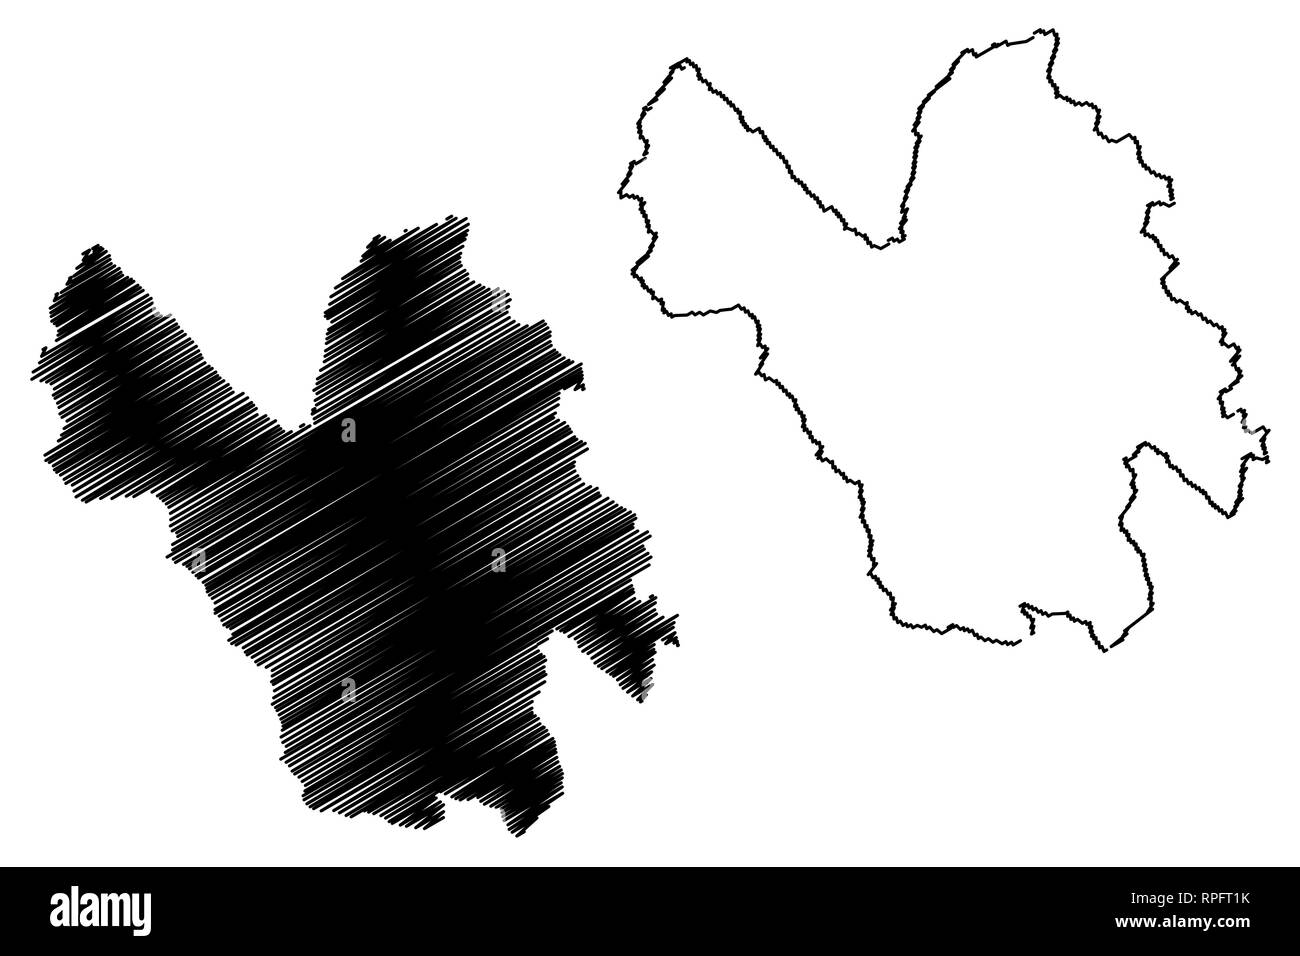 Lao Cai Province (Socialist Republic of Vietnam, Subdivisions of Vietnam) map vector illustration, scribble sketch Tinh Lao Cai map - Stock Vector